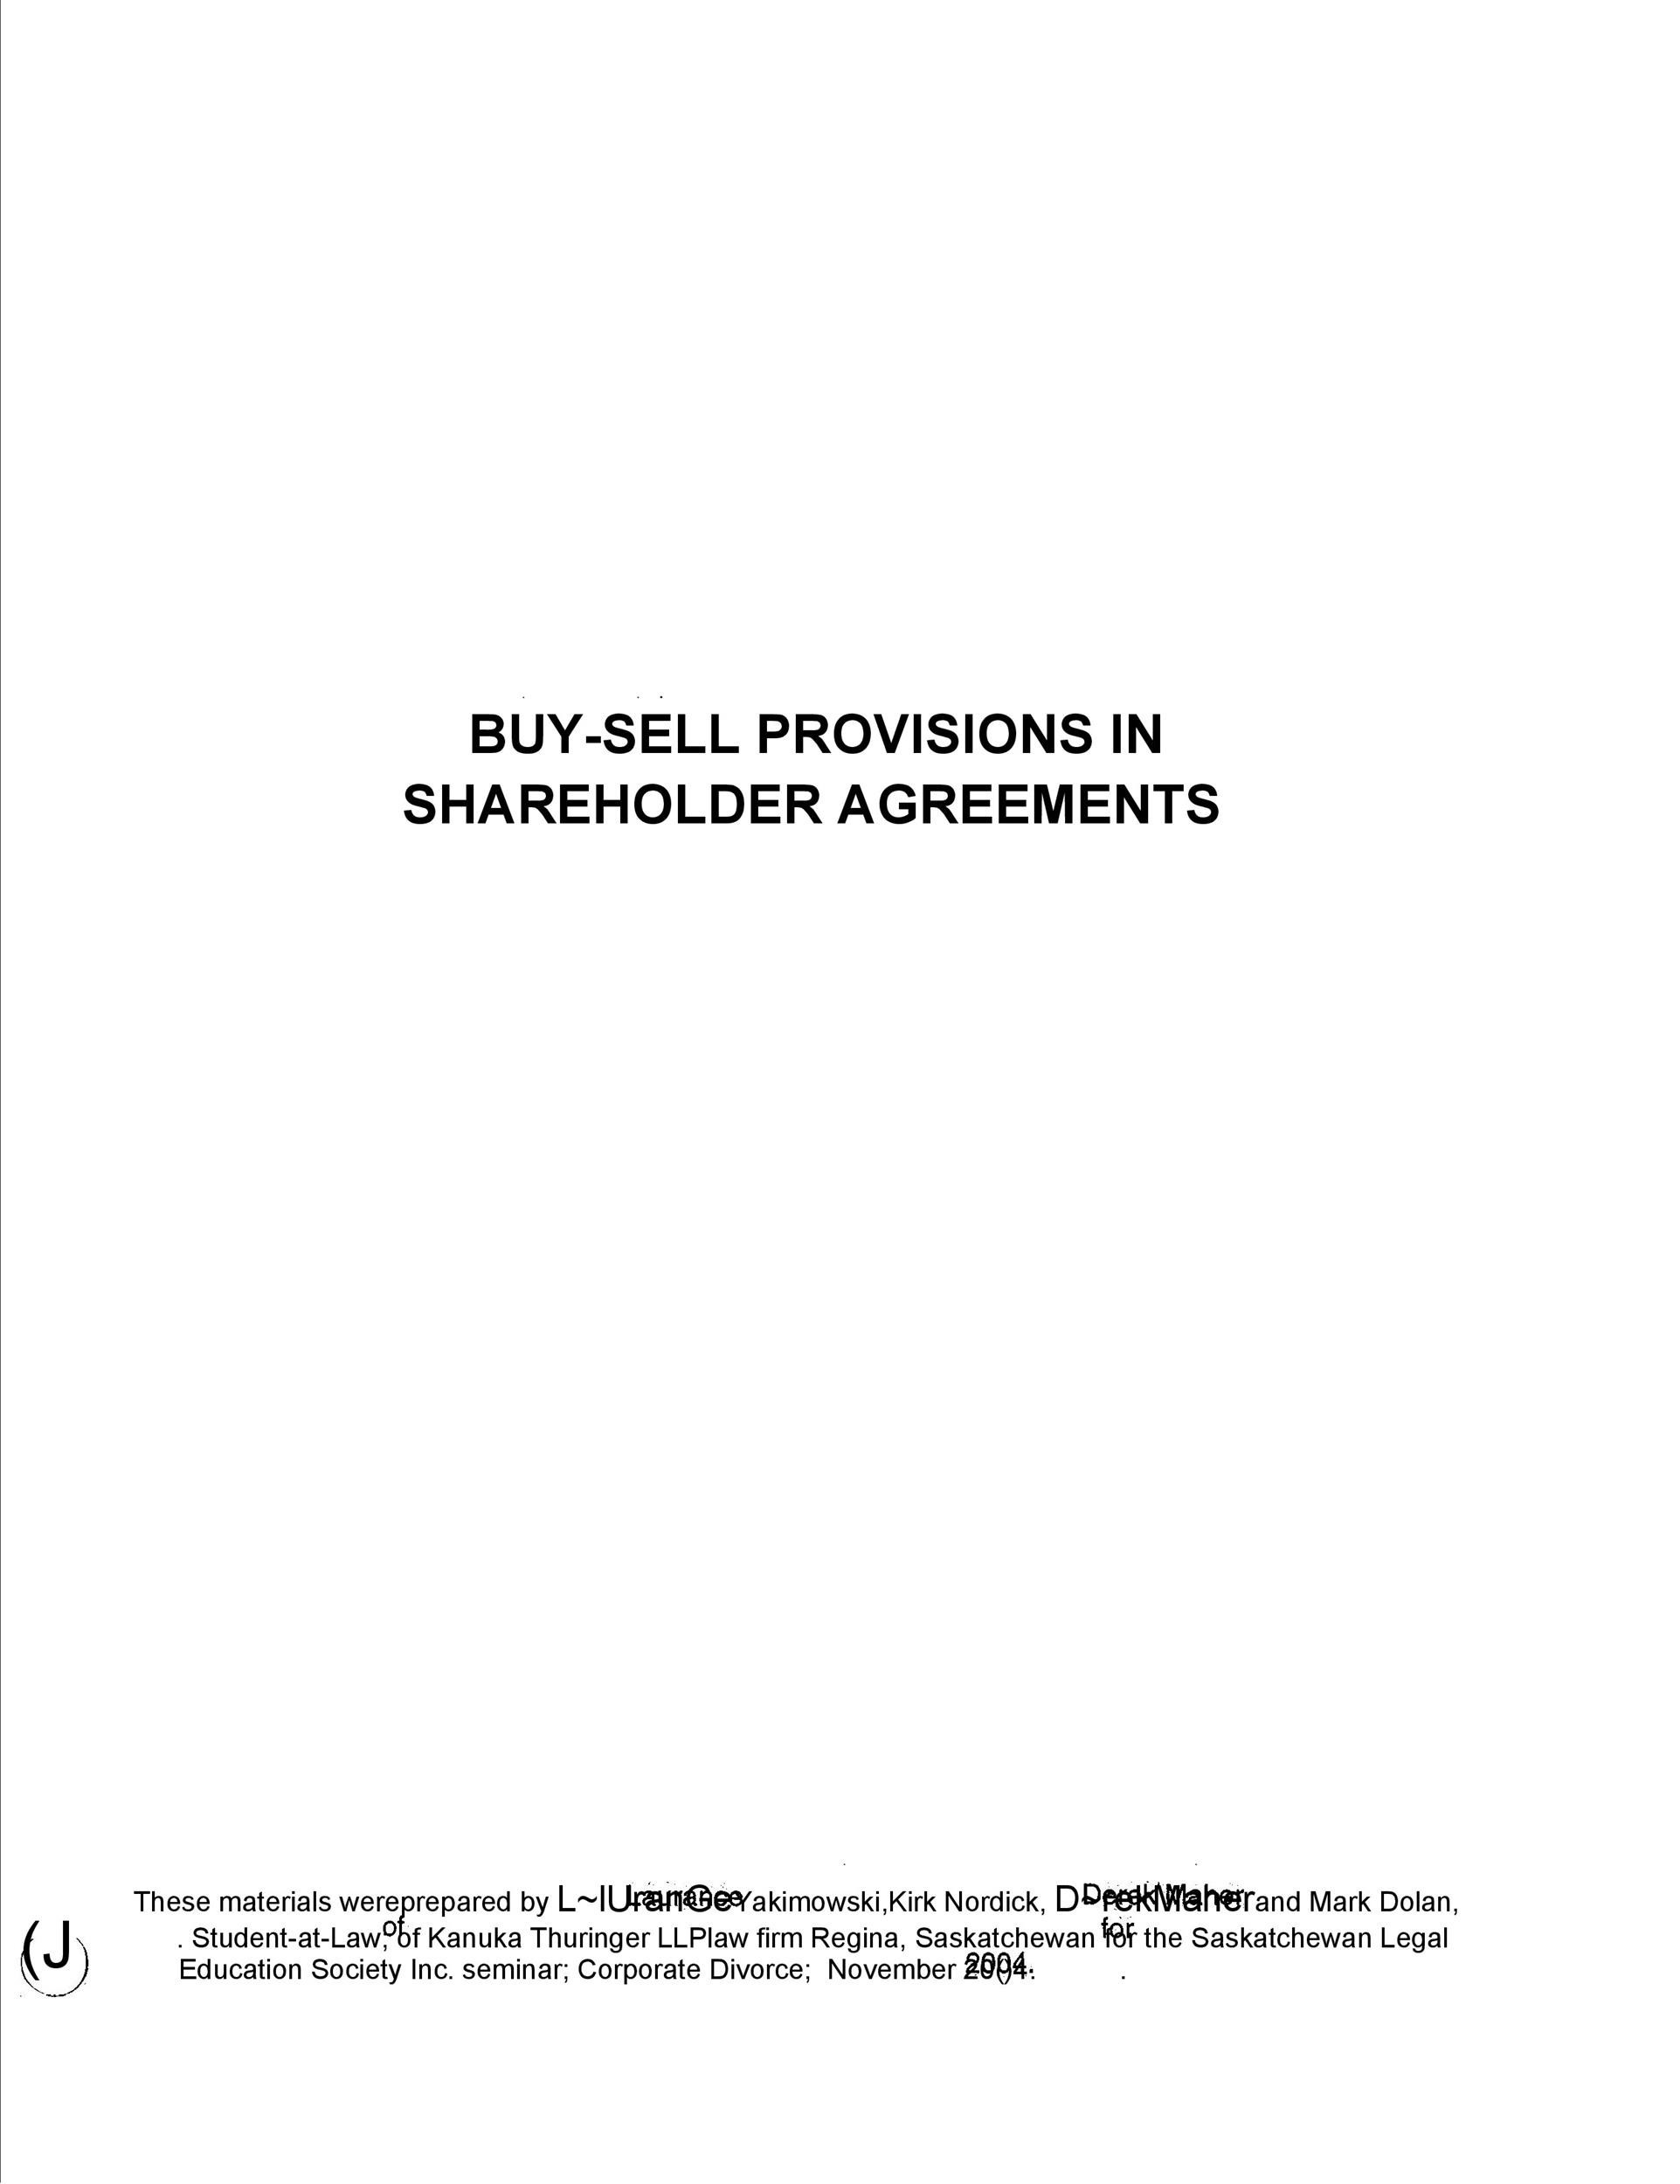 Free shareholder agreement 25